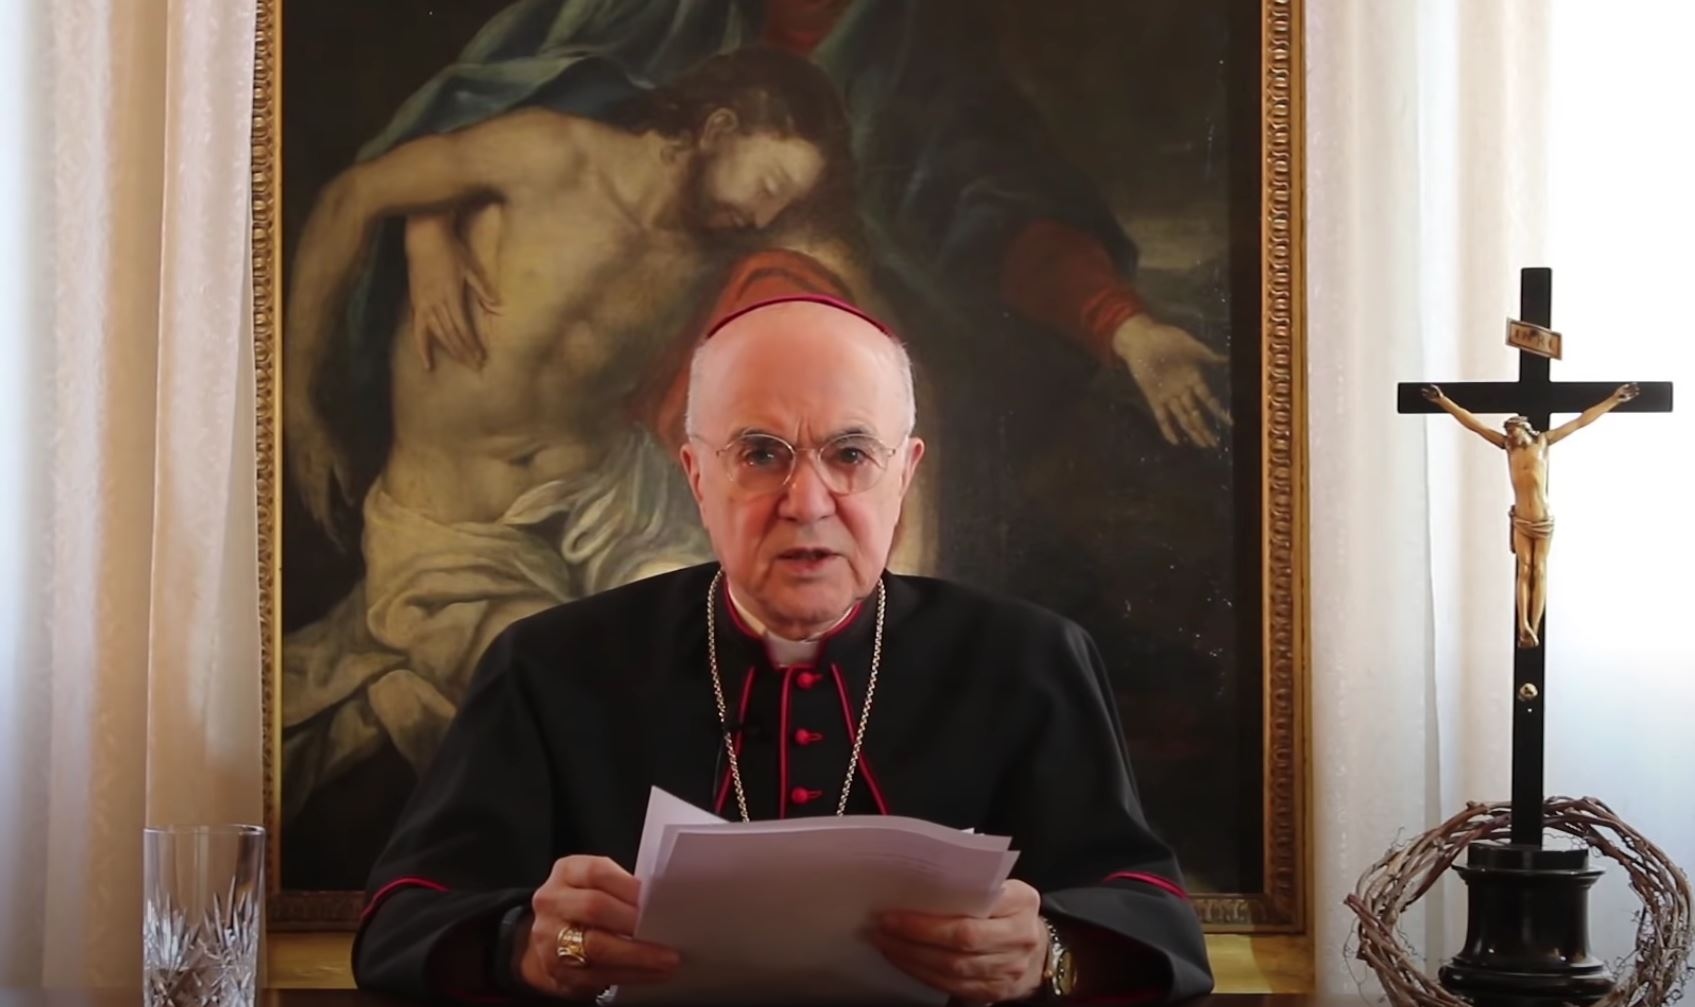 vigano reading letter